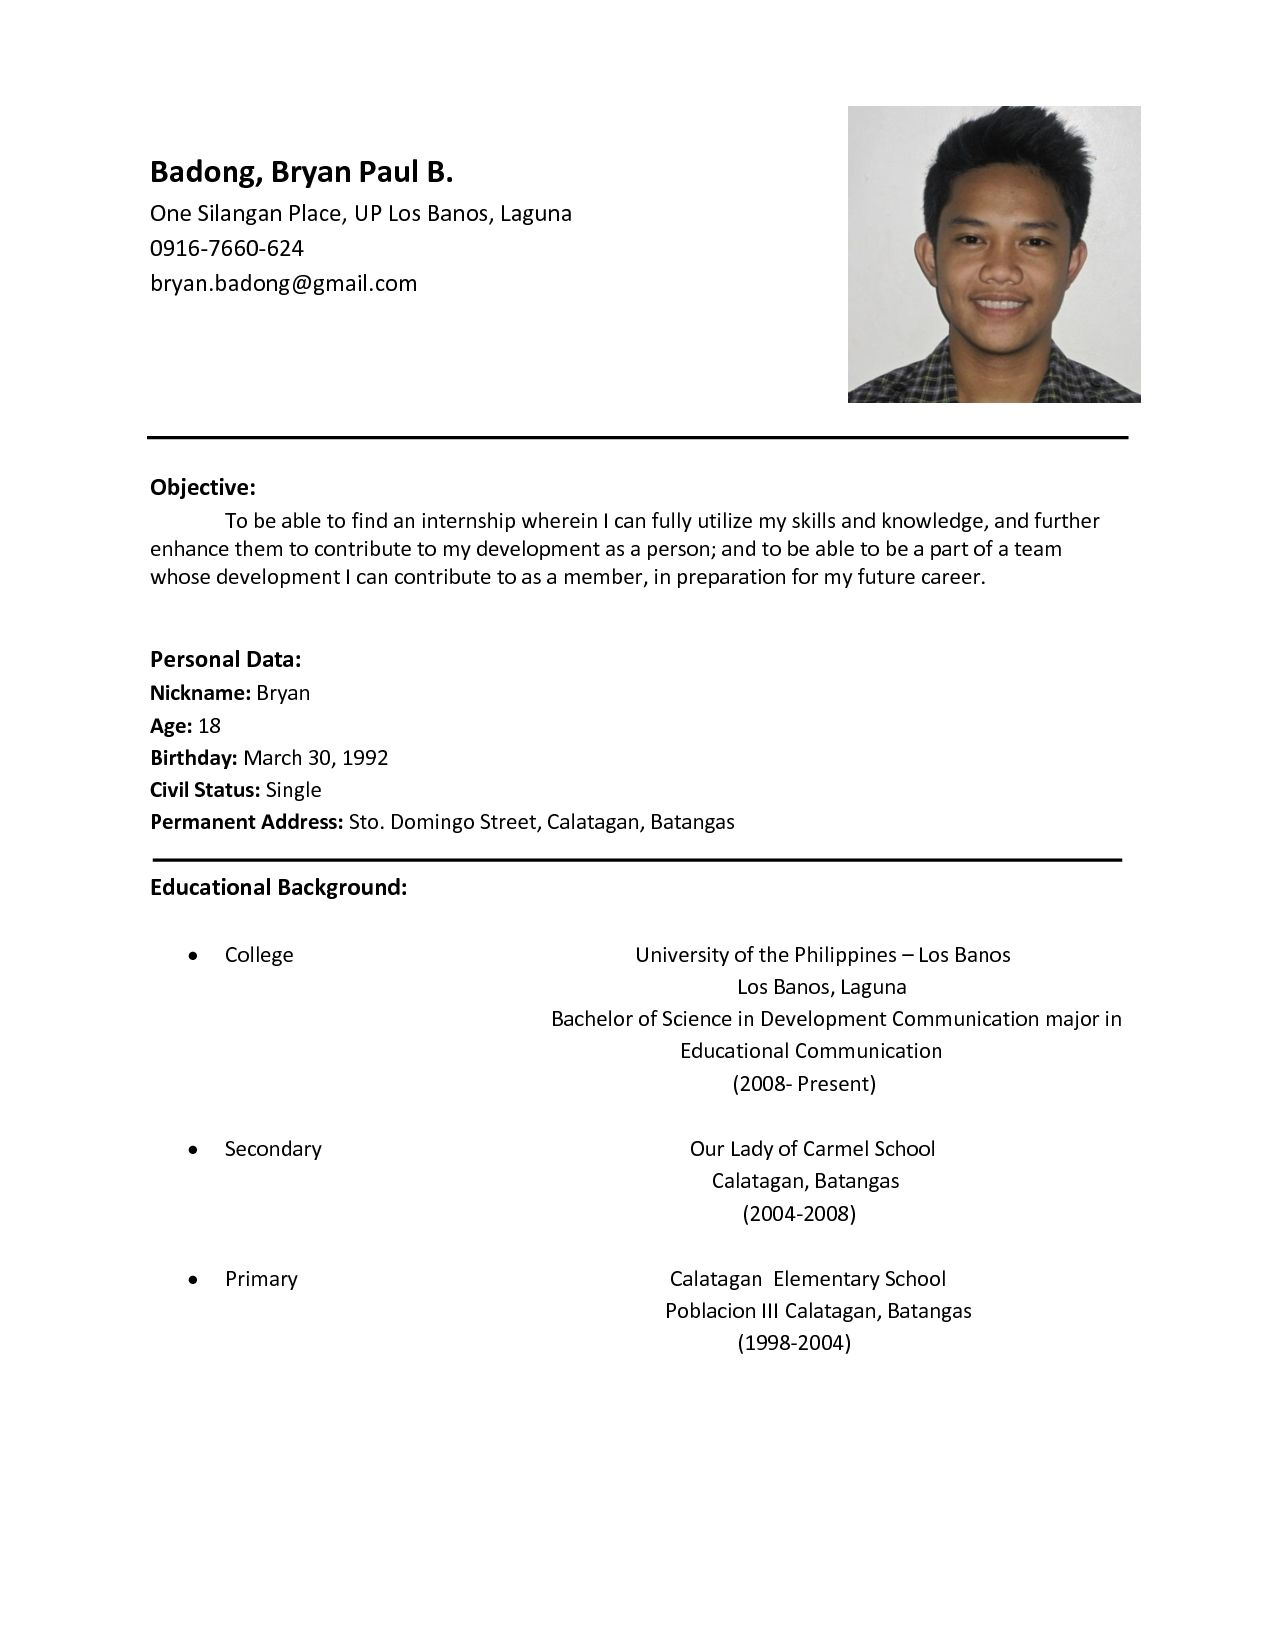 Resume Format Template Fair Proper Resume Job Format Examples Data Sample Resume New Example